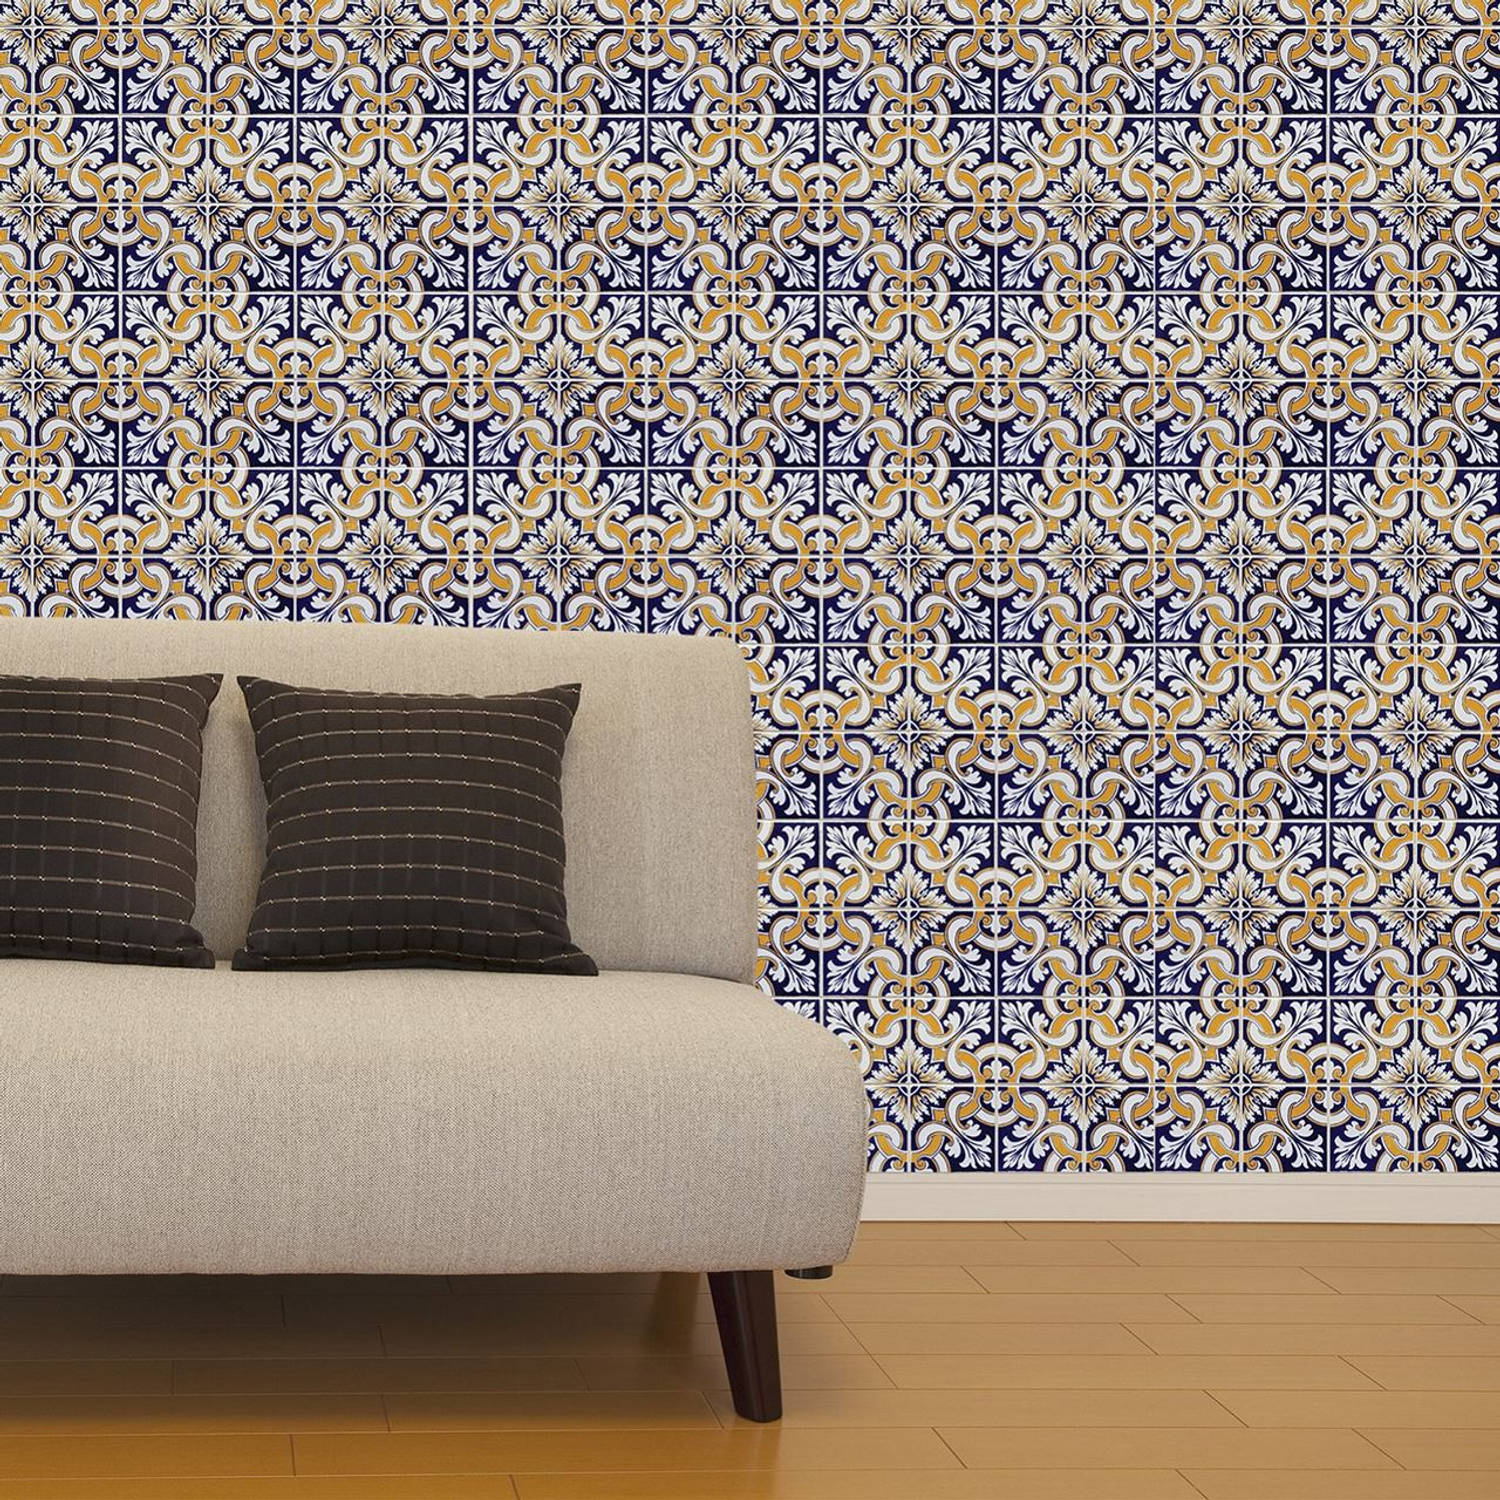 Walplus muur decoratie sticker - talavera tegels 8 x stickervel